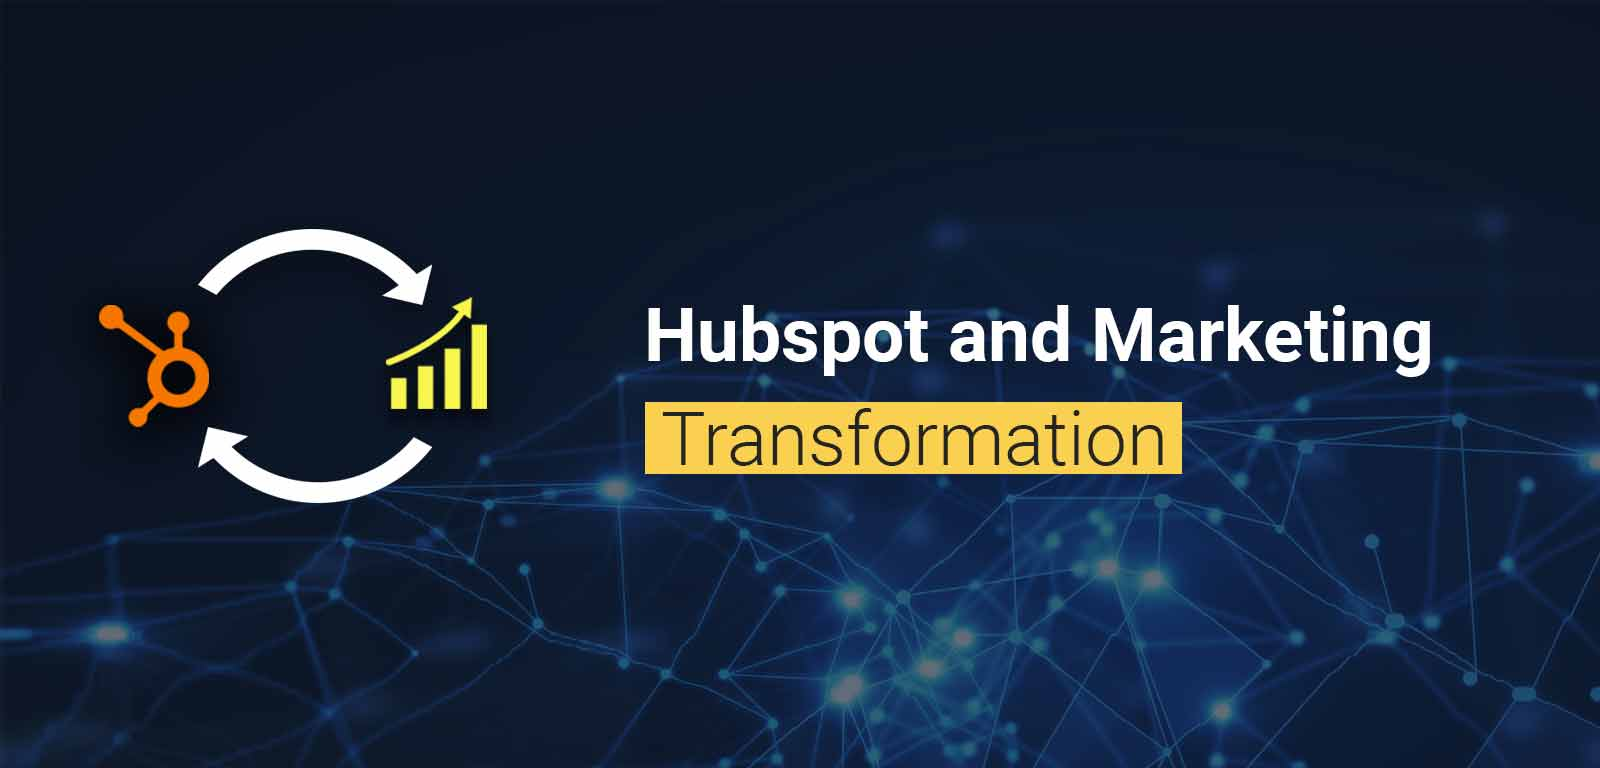 Hubspot and Marketing Transformation